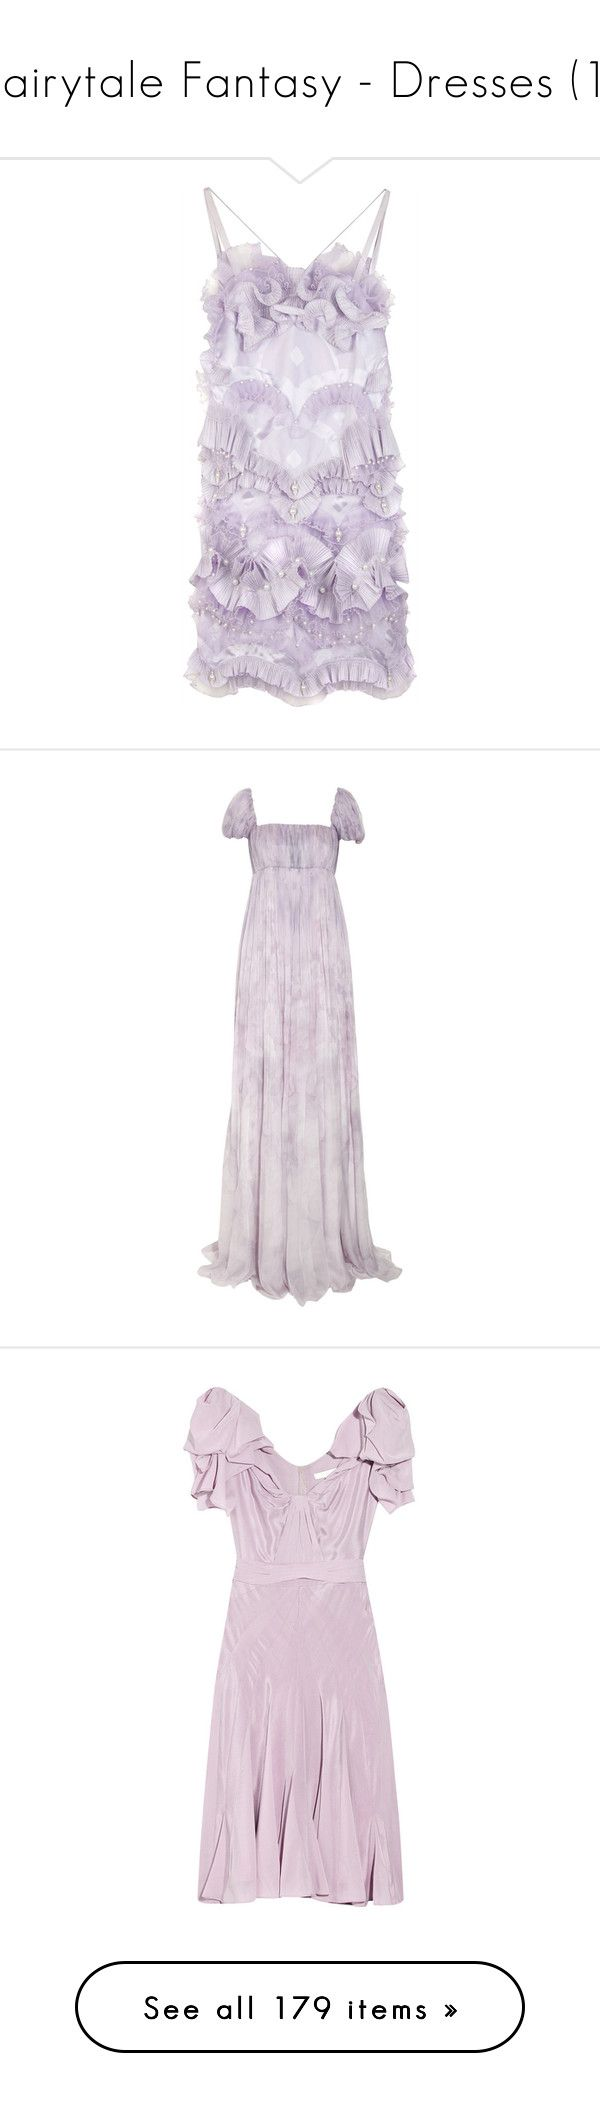 """""""Fairytale Fantasy - Dresses (1)"""" by metalheavy ❤ liked on Polyvore featuring dresses, vestidos, purple, haljine, women, summer cocktail dresses, spaghetti strap summer dress, pleated dress, lace up dress and scalloped dress"""